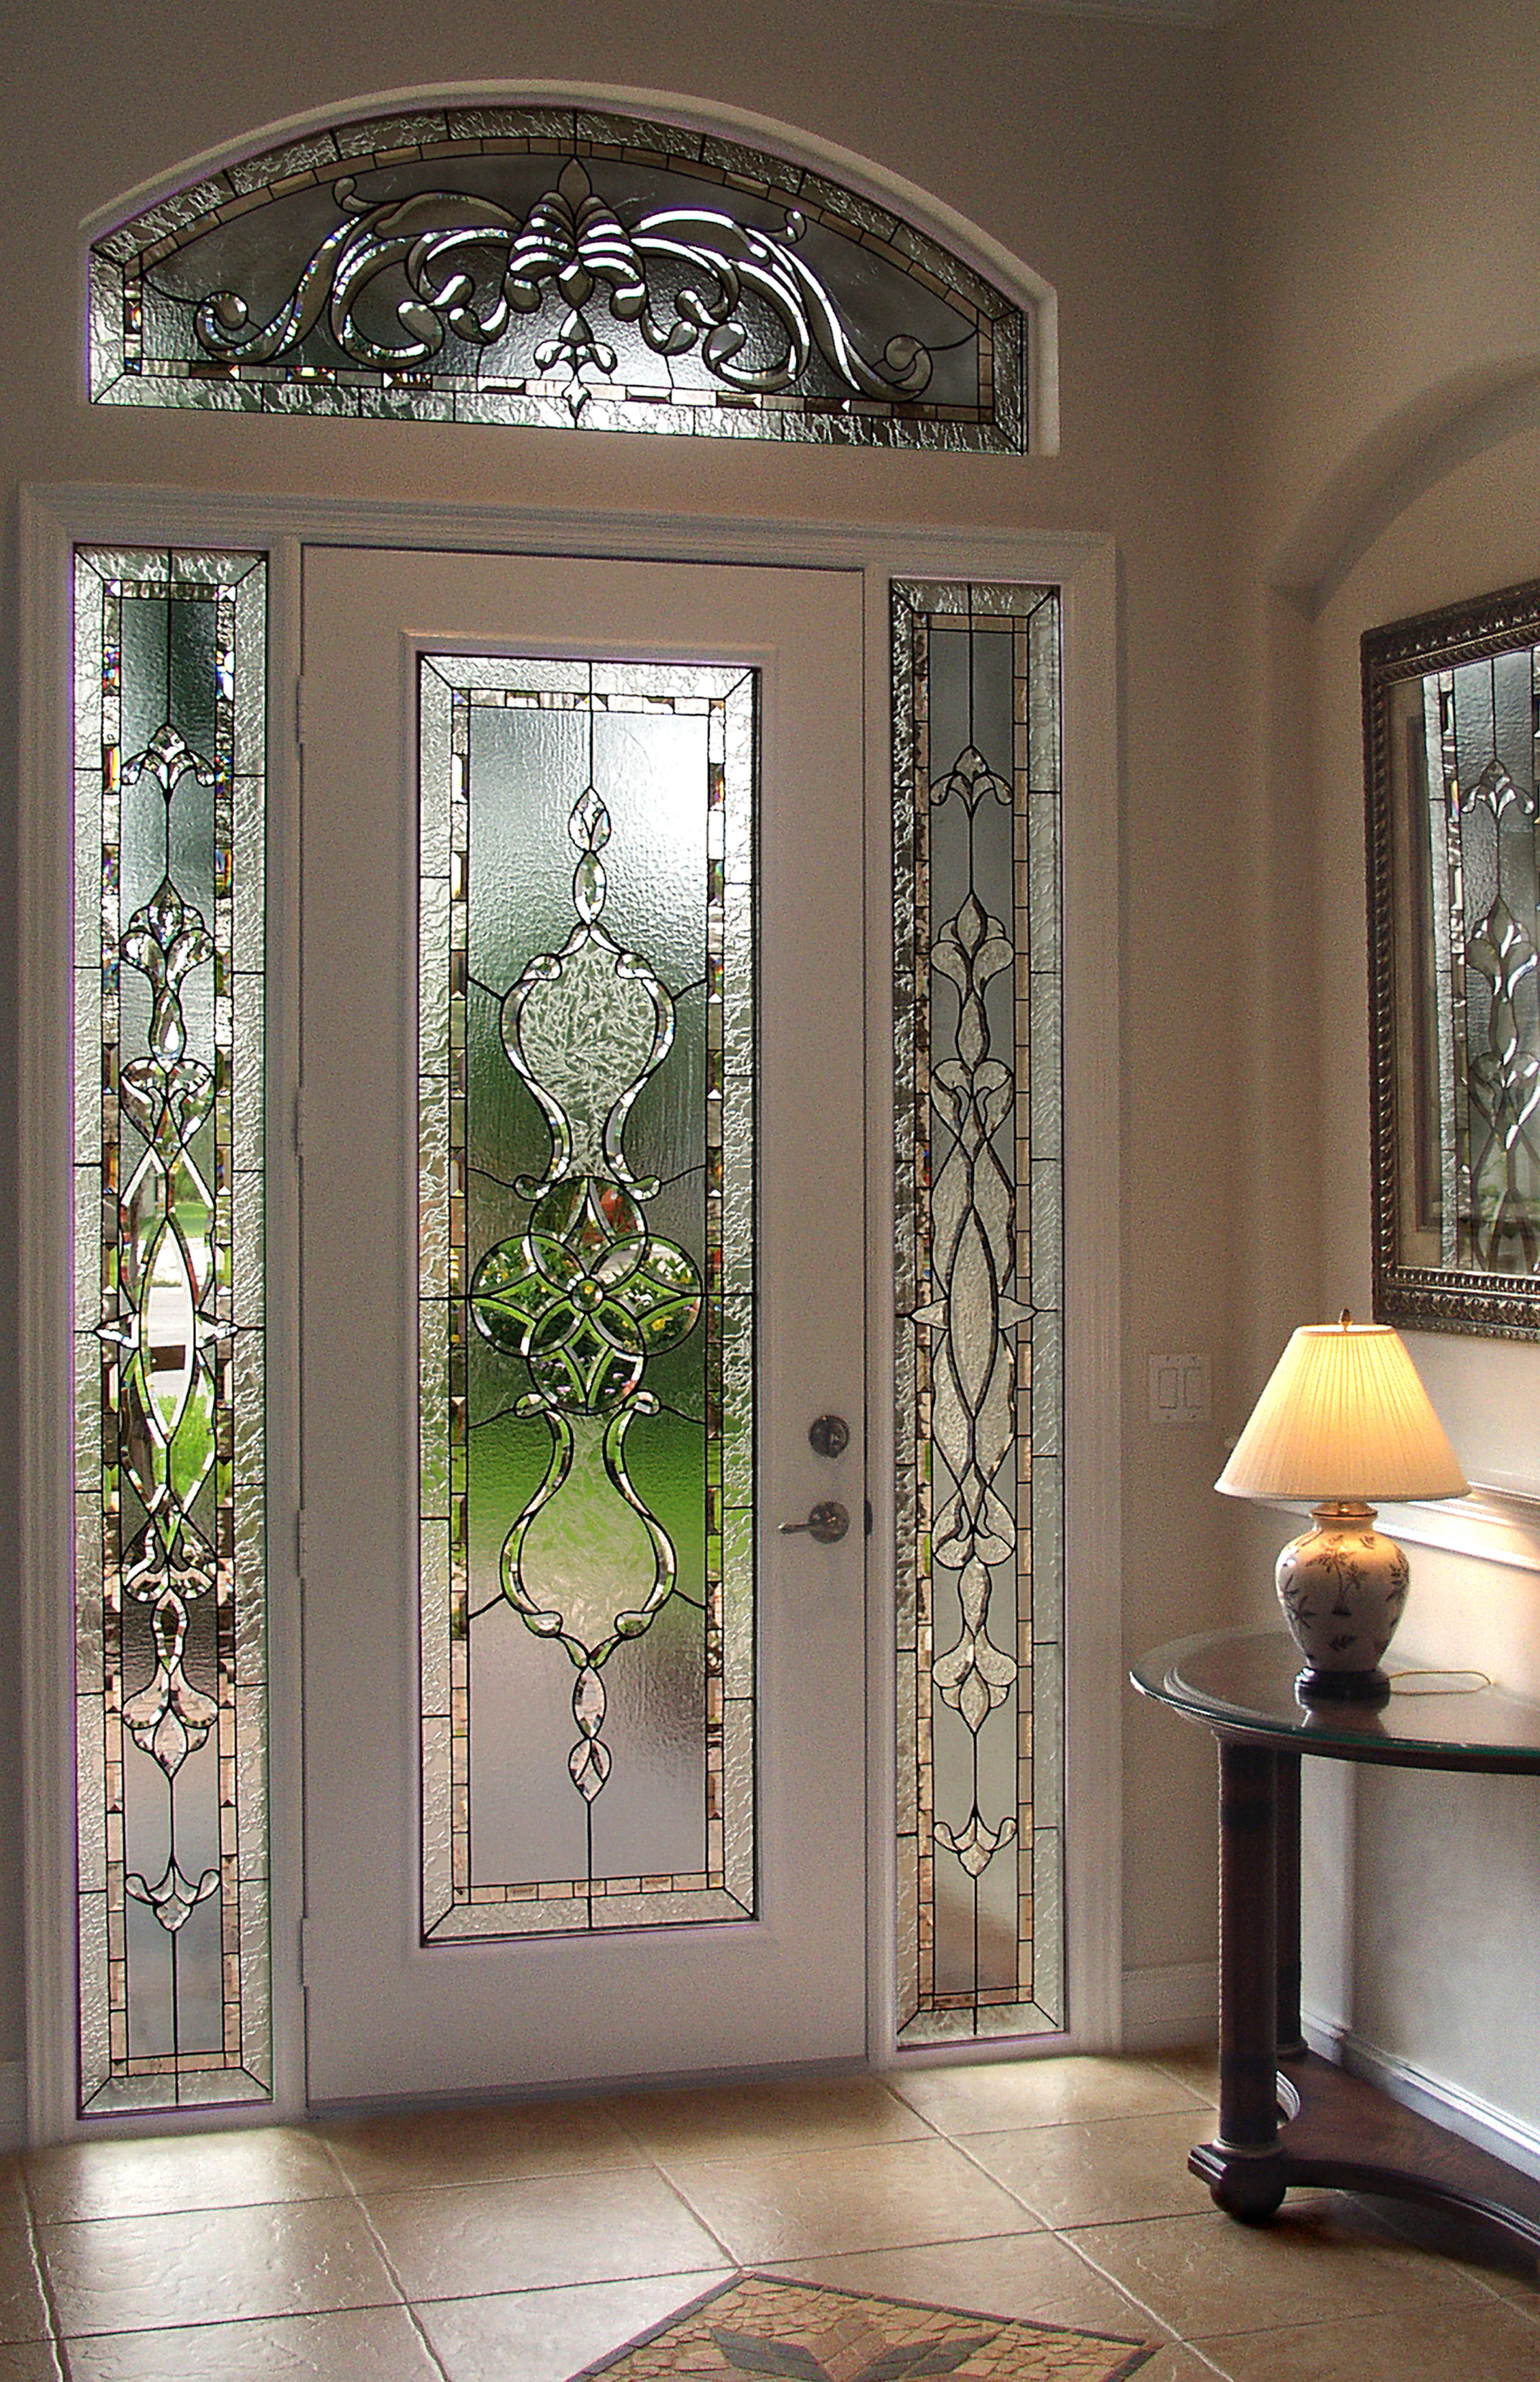 Italianate design in bevels